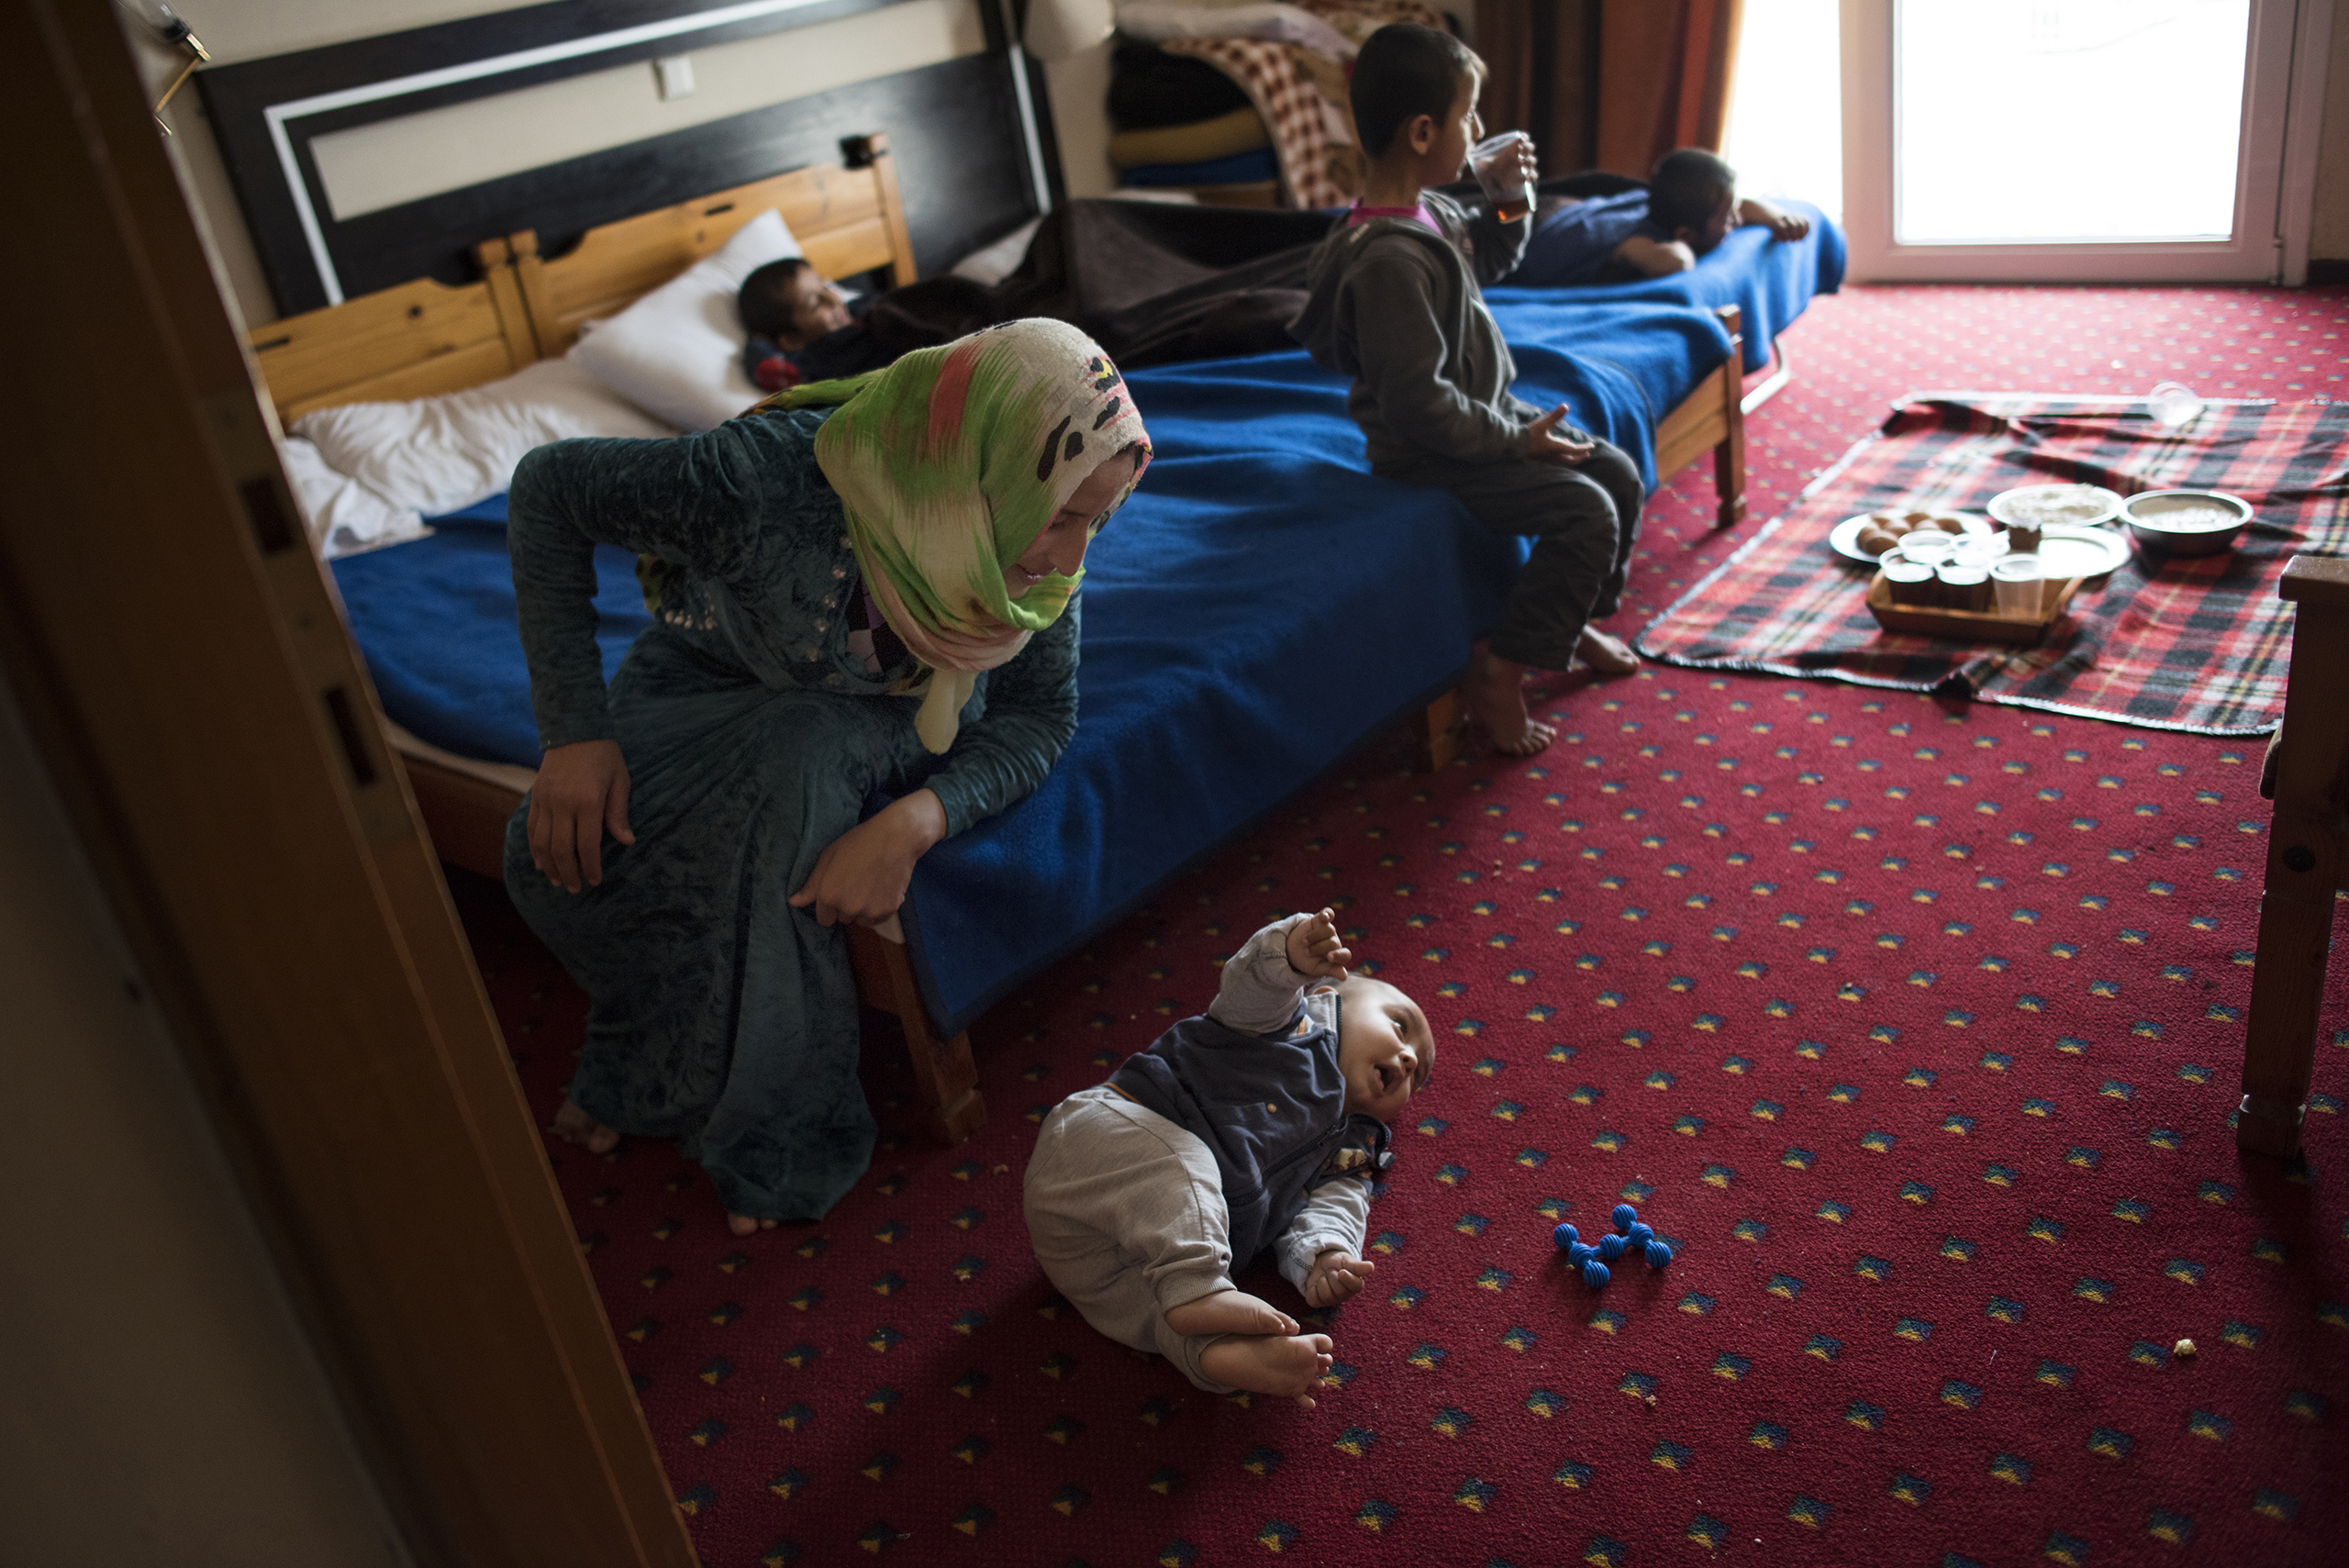 27-year-old Illham Saleh watches her six-month-old baby, Faraj, try to roll over while at a hotel in Kastoria, Greece, near the Albanian border, March 27, 2017.